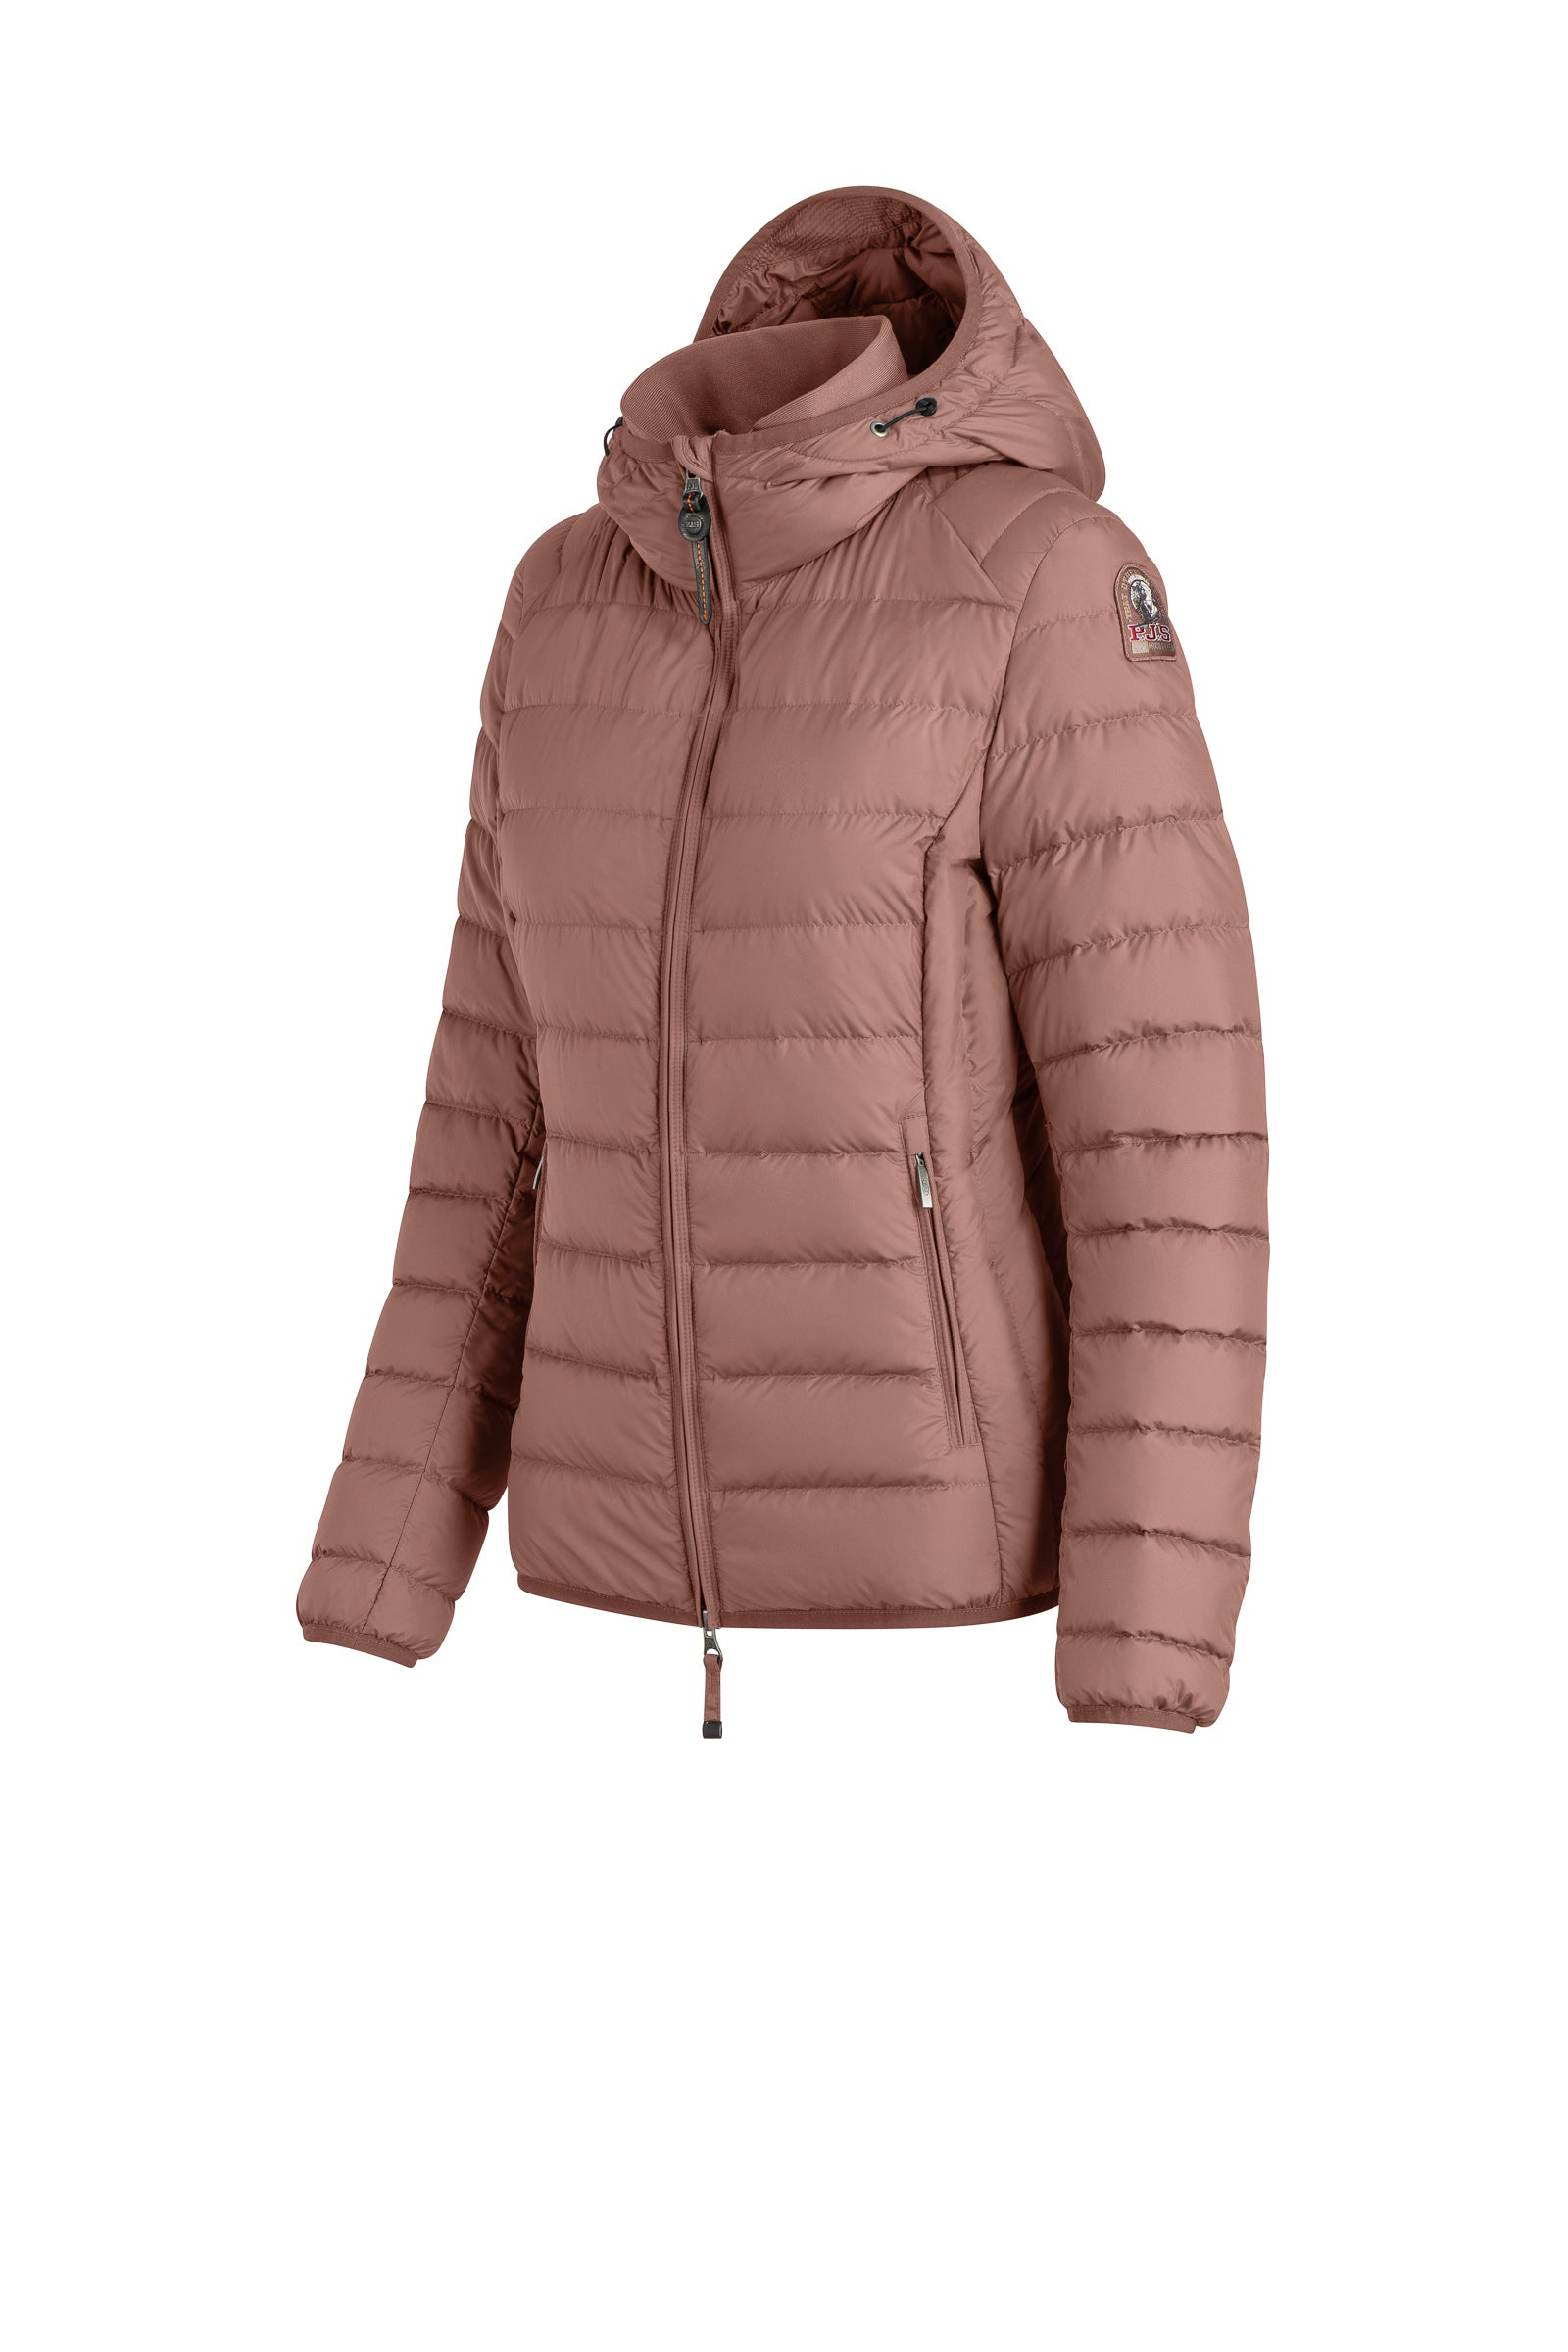 Parajumpers Juliet Jacket in Ash Rose